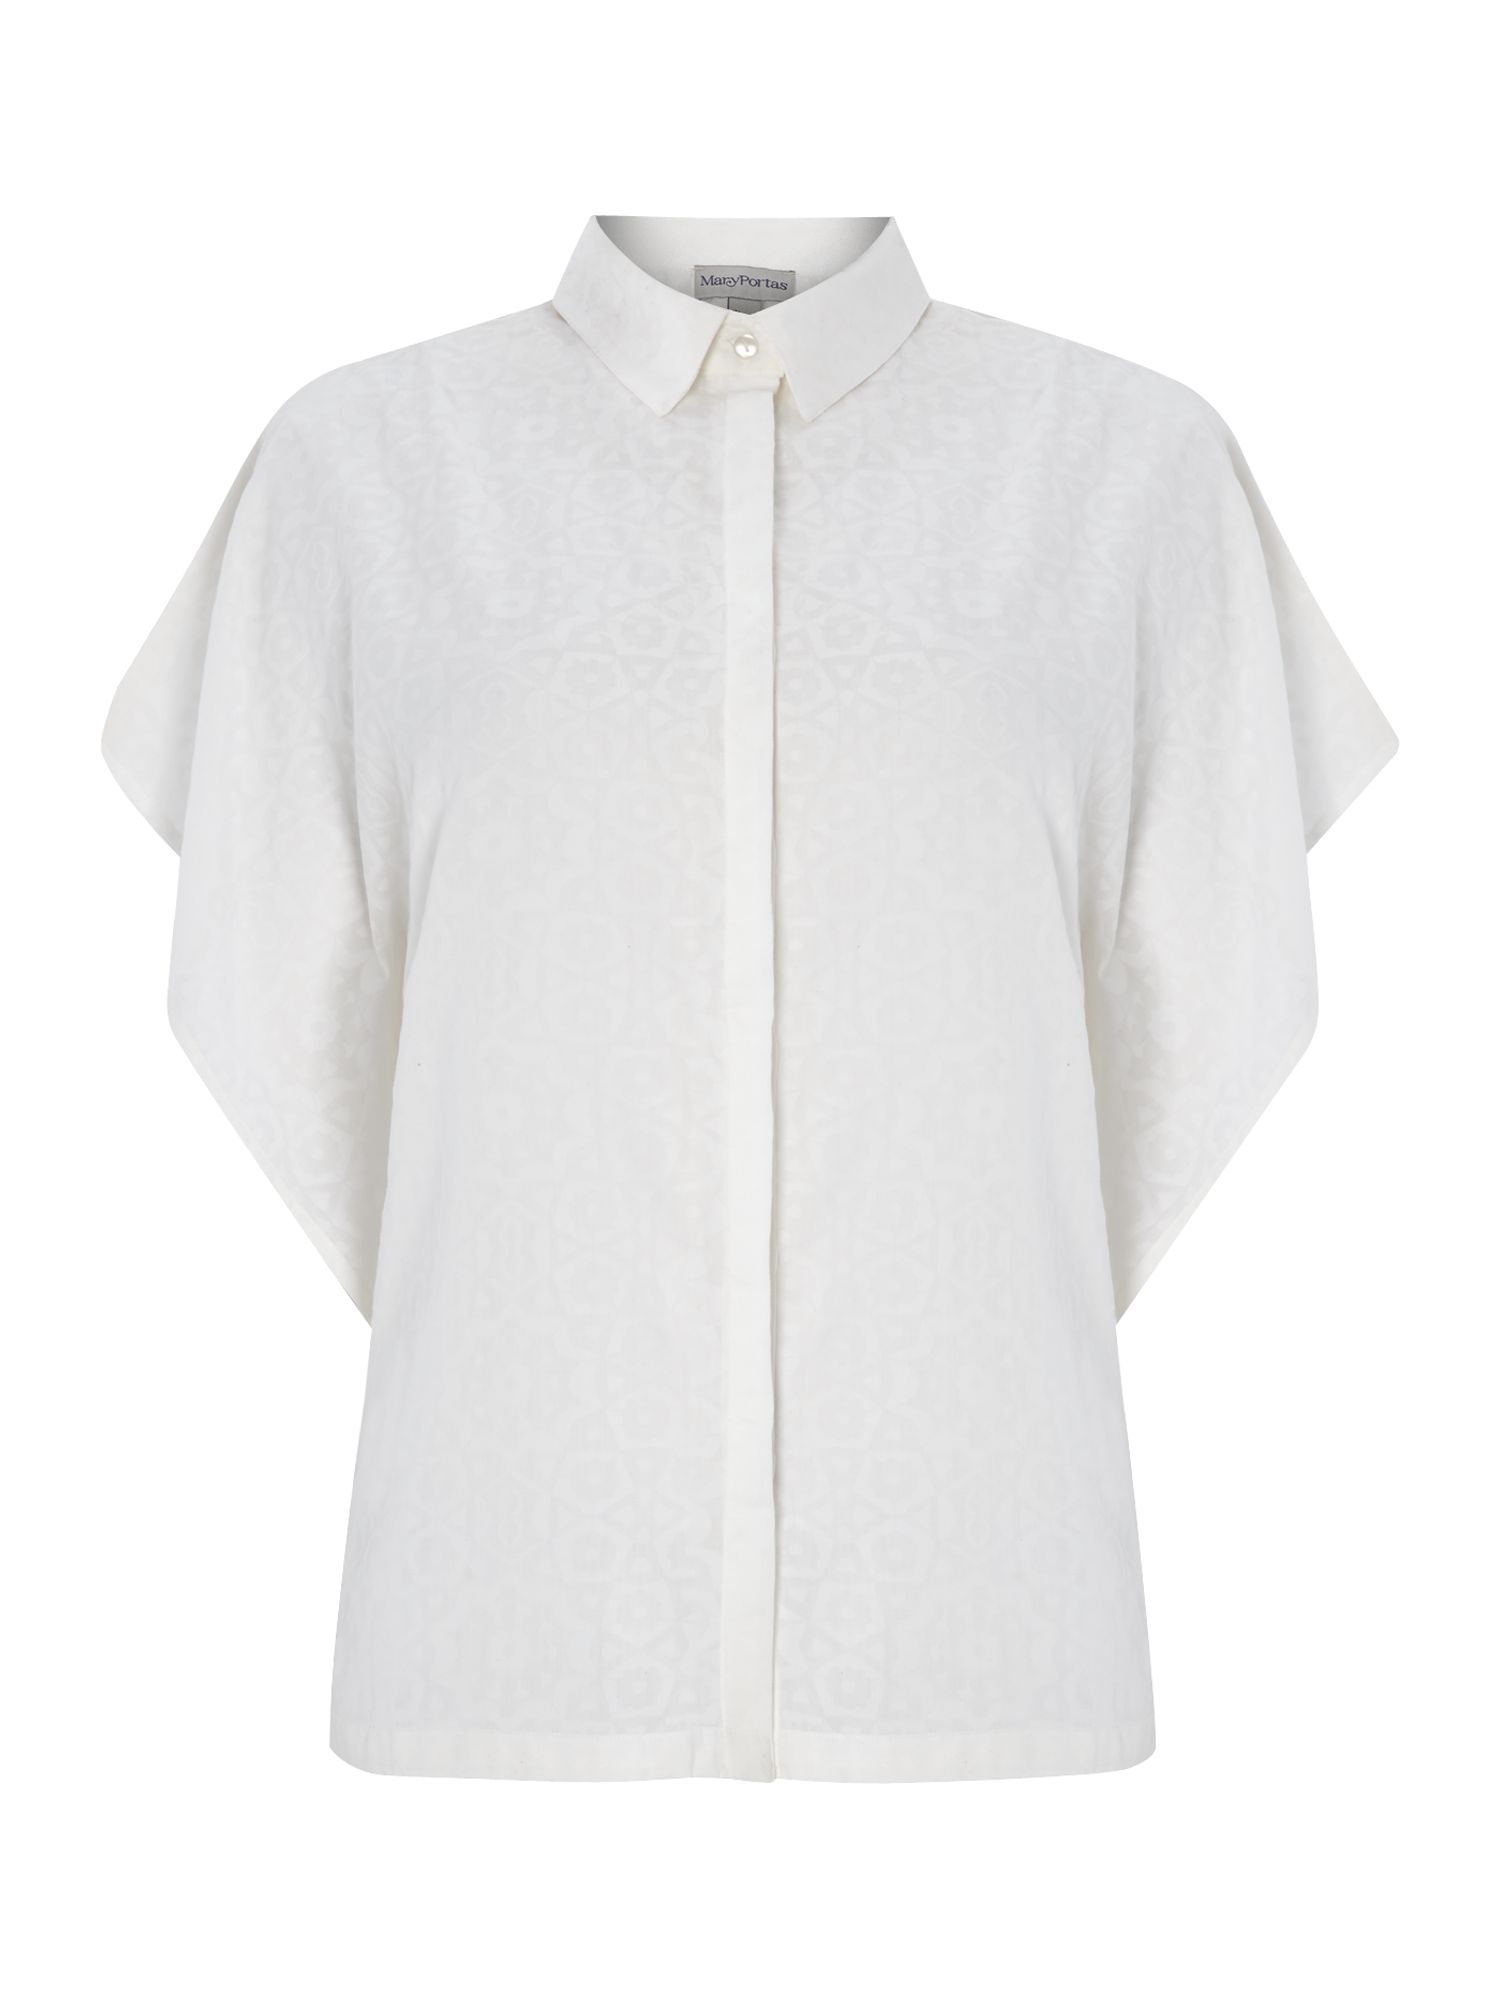 Oversized no brainer geo burn out shirt